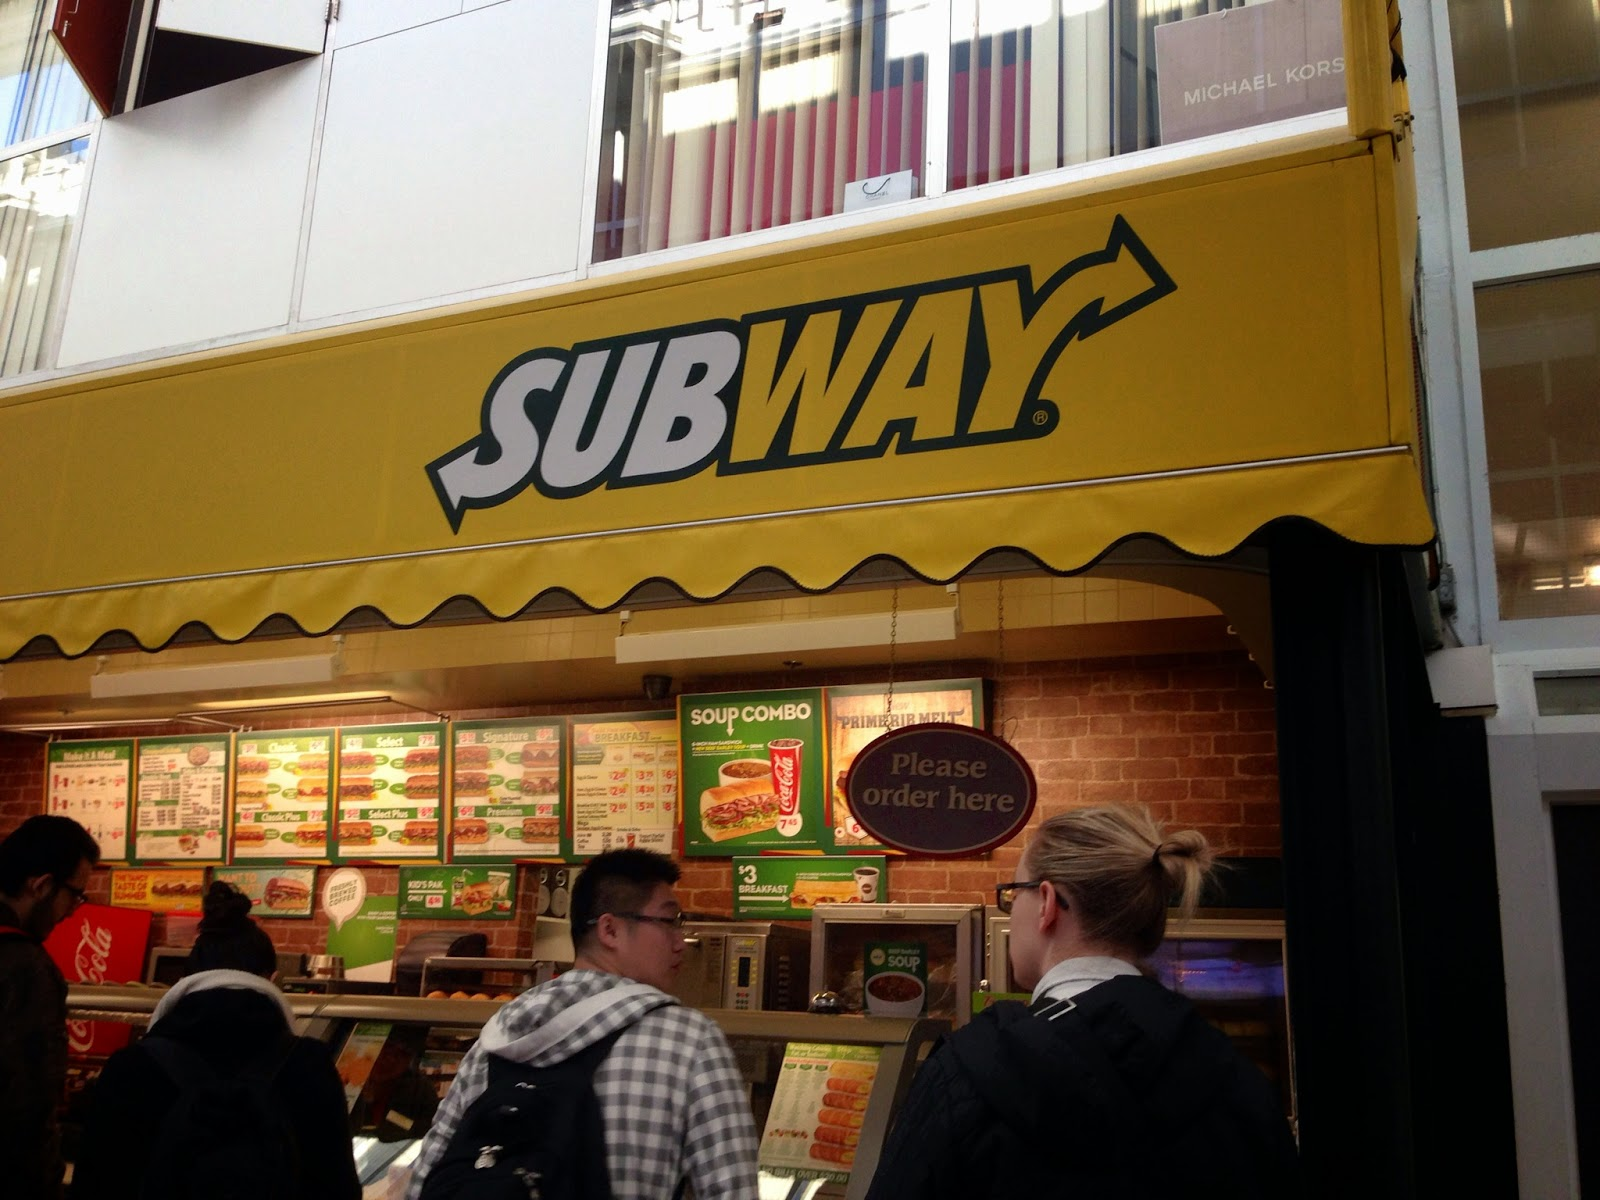 Subway in HUB